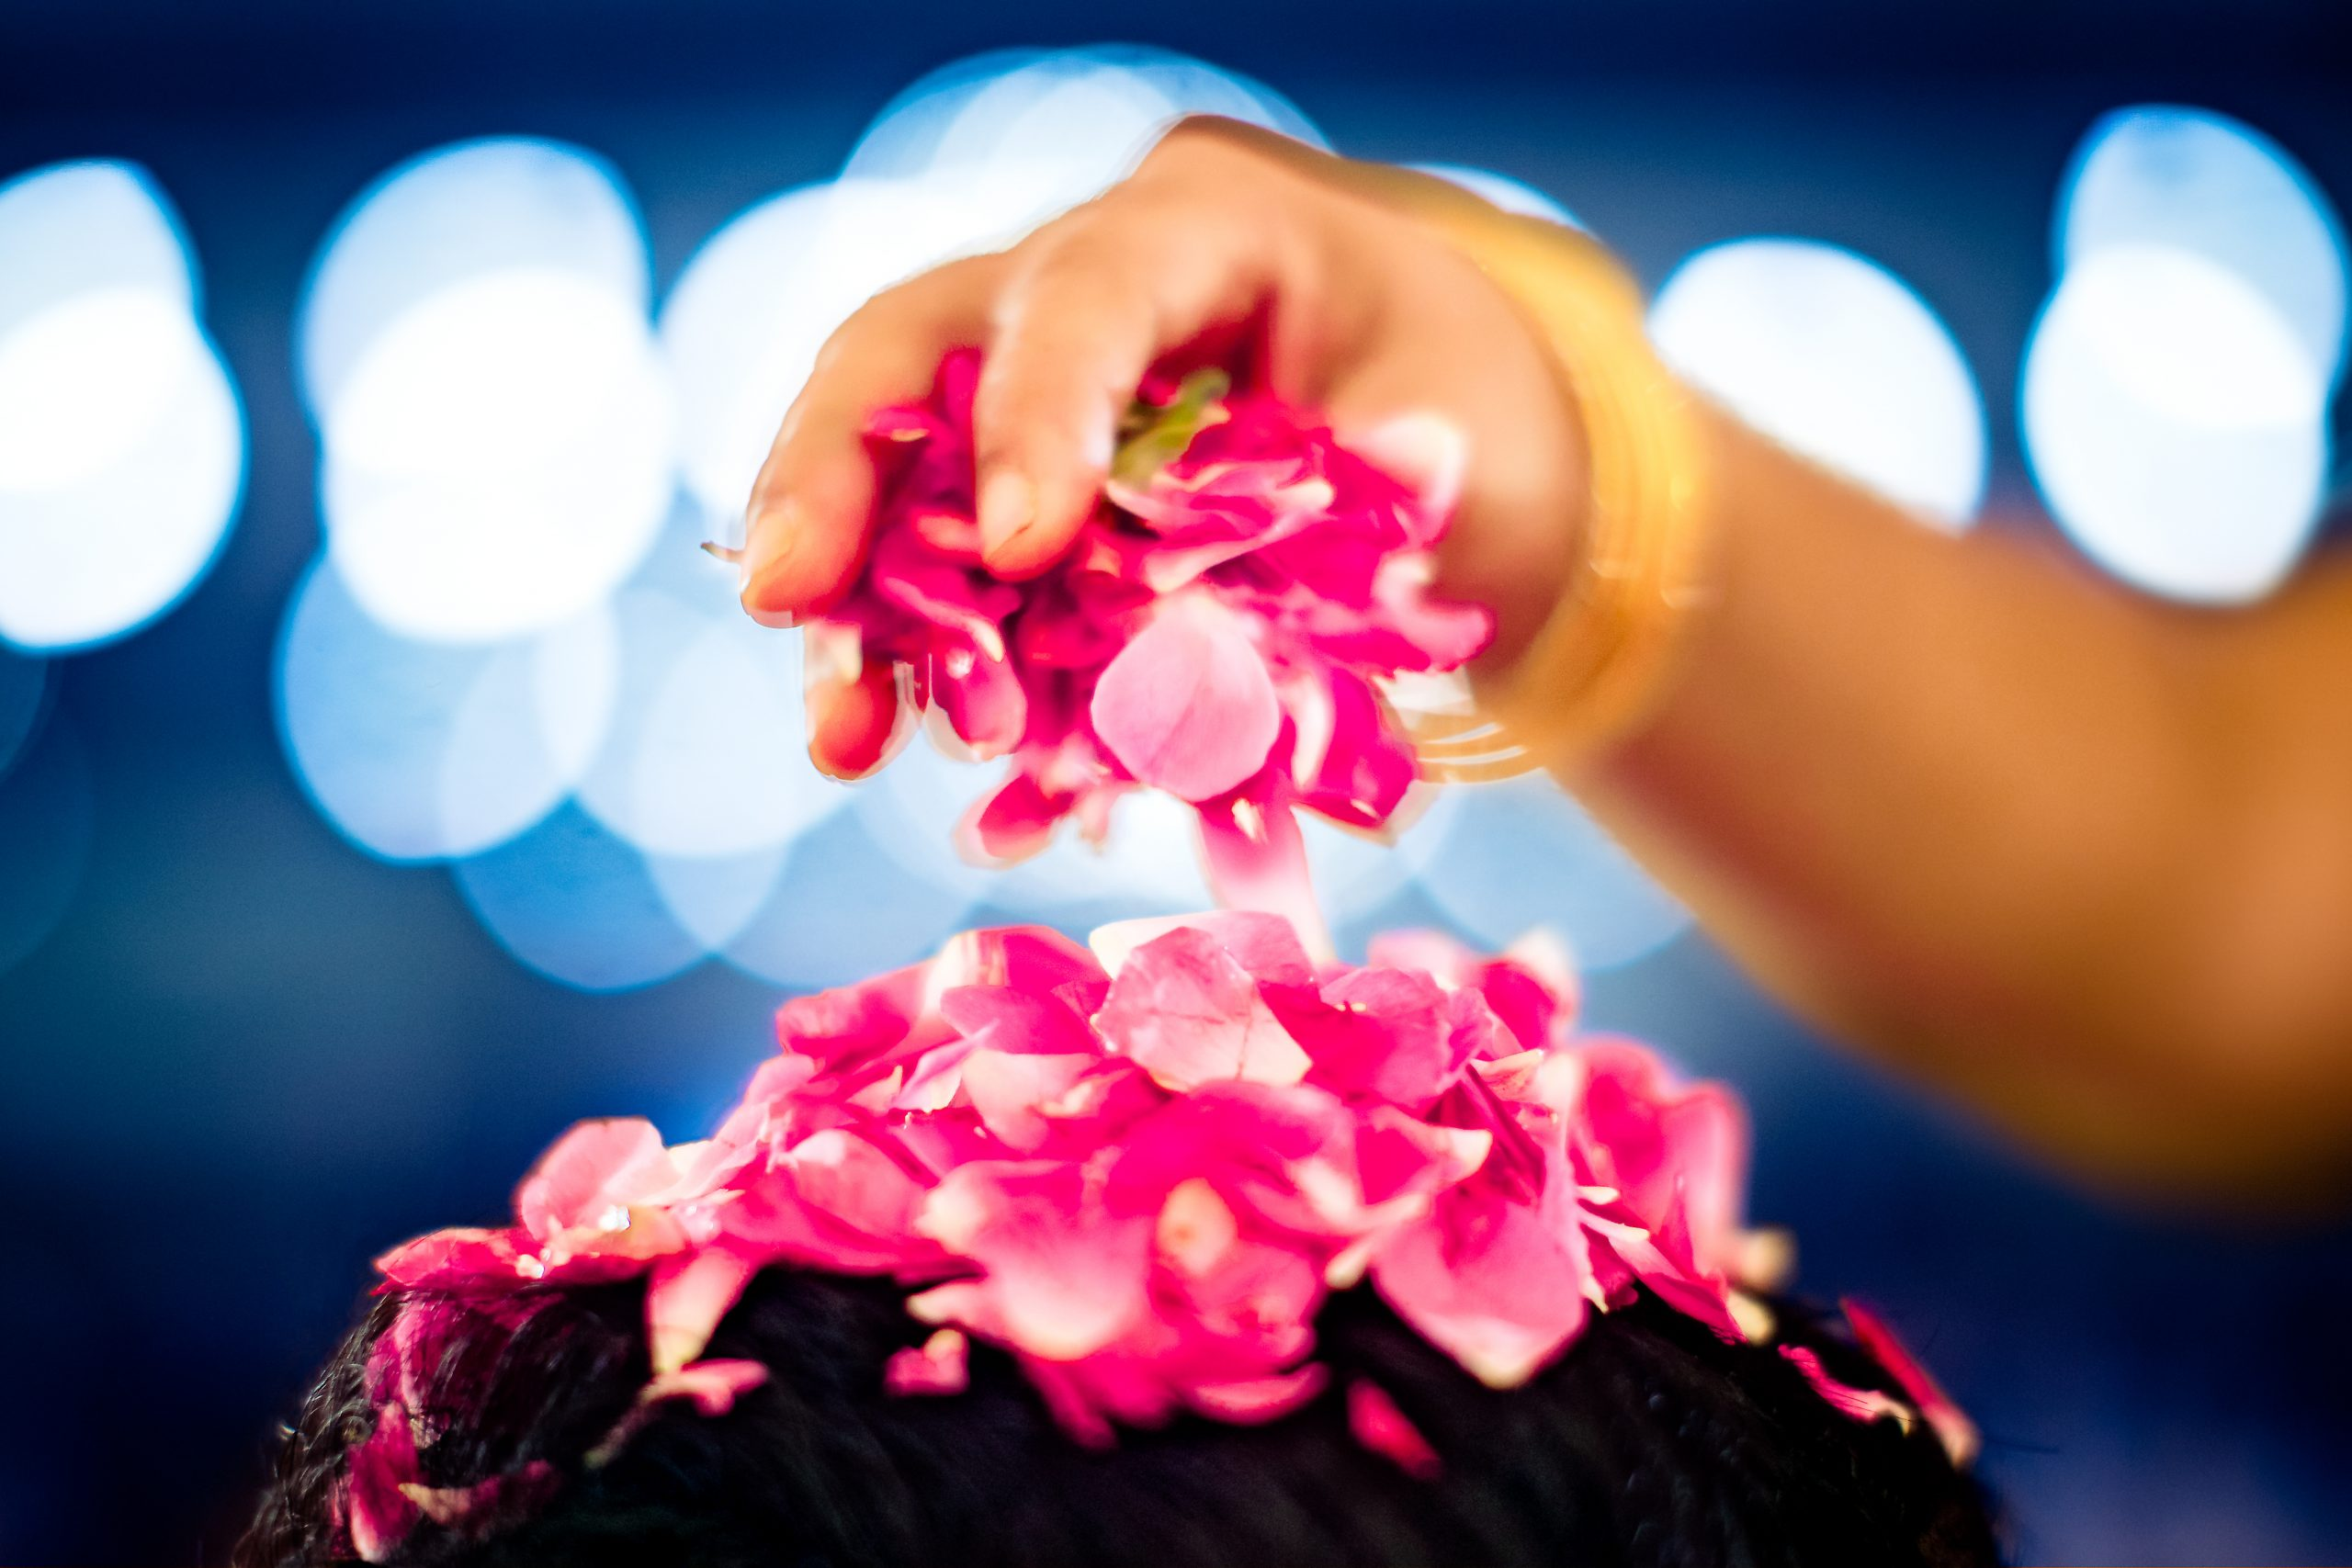 Placing flower petals on groom's head